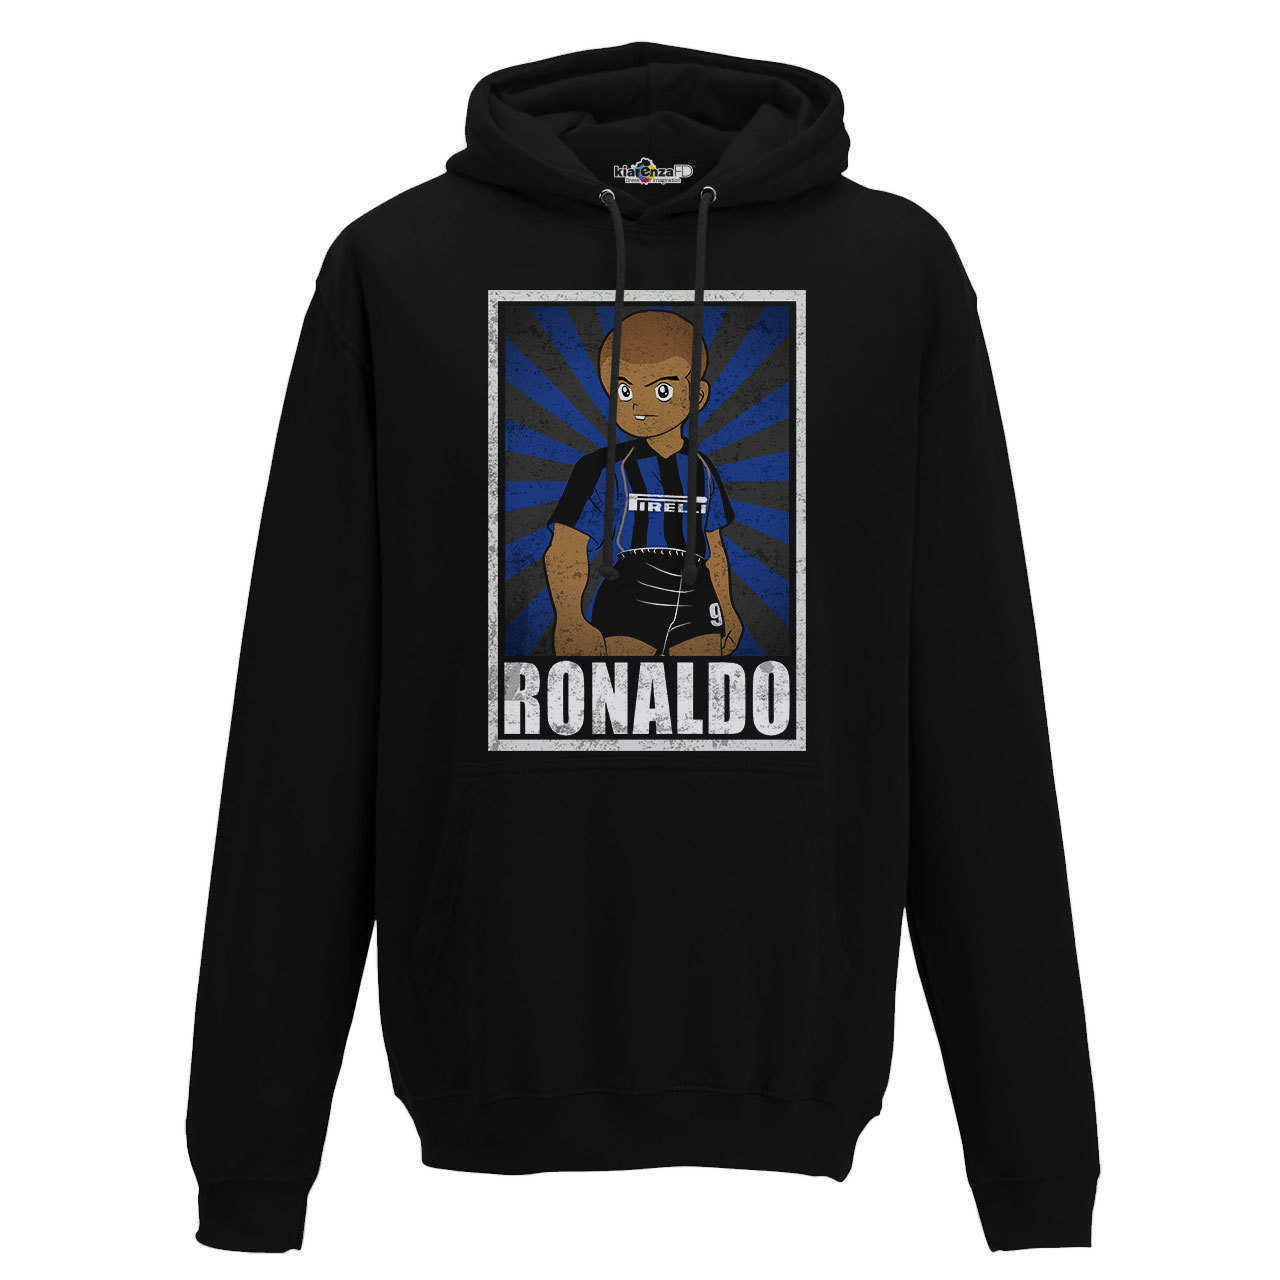 Hood Sweatshirt <font><b>Soccer</b></font> Vintage Ronaldo <font><b>Inter</b></font> <font><b>Milan</b></font> Legend Spoof Holly and Benji Grunge S image